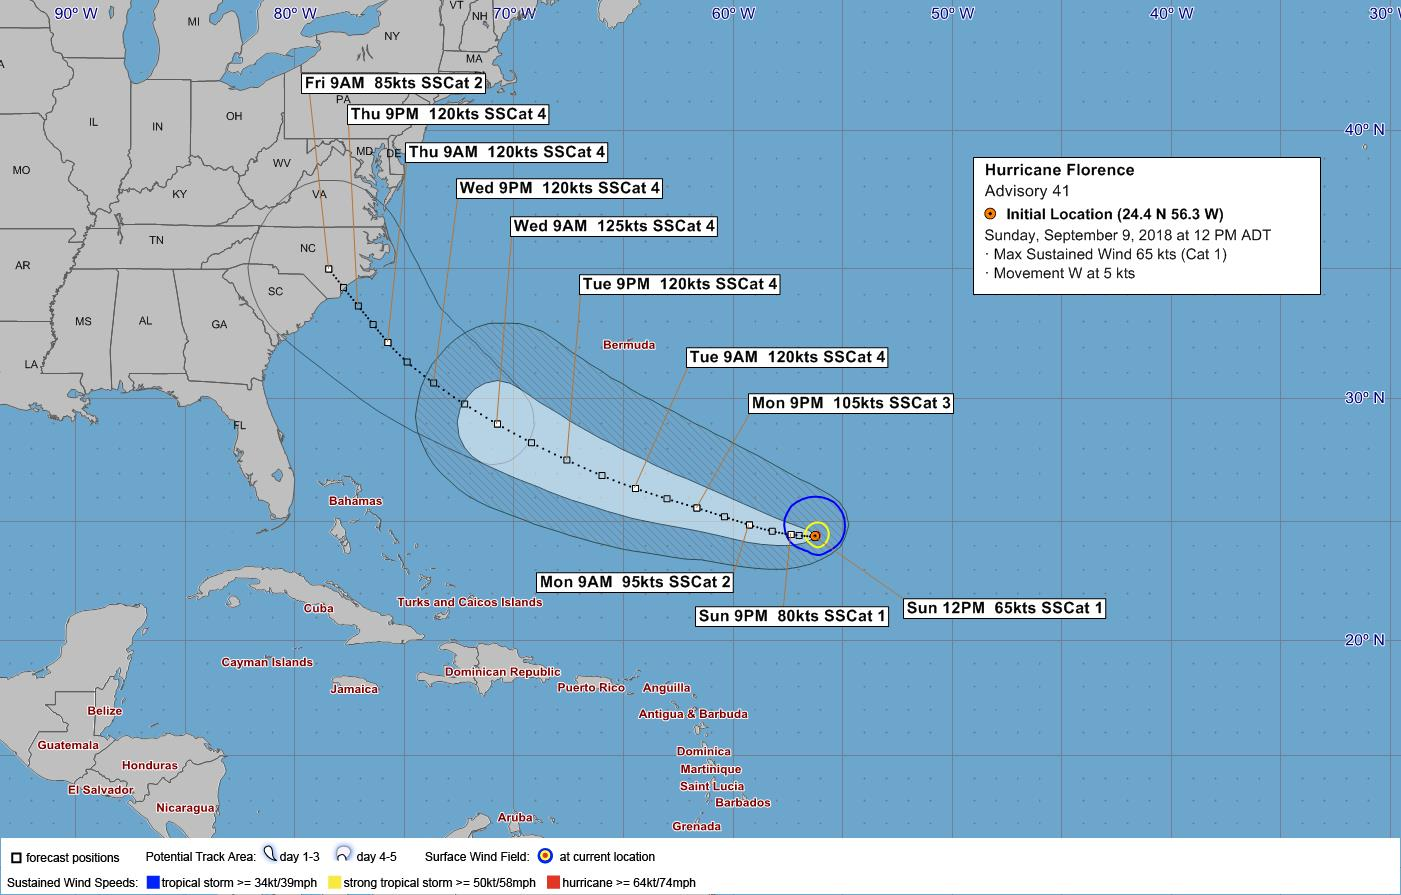 South Carolina orders mandatory evacuation of entire coast ahead of Hurricane Florence